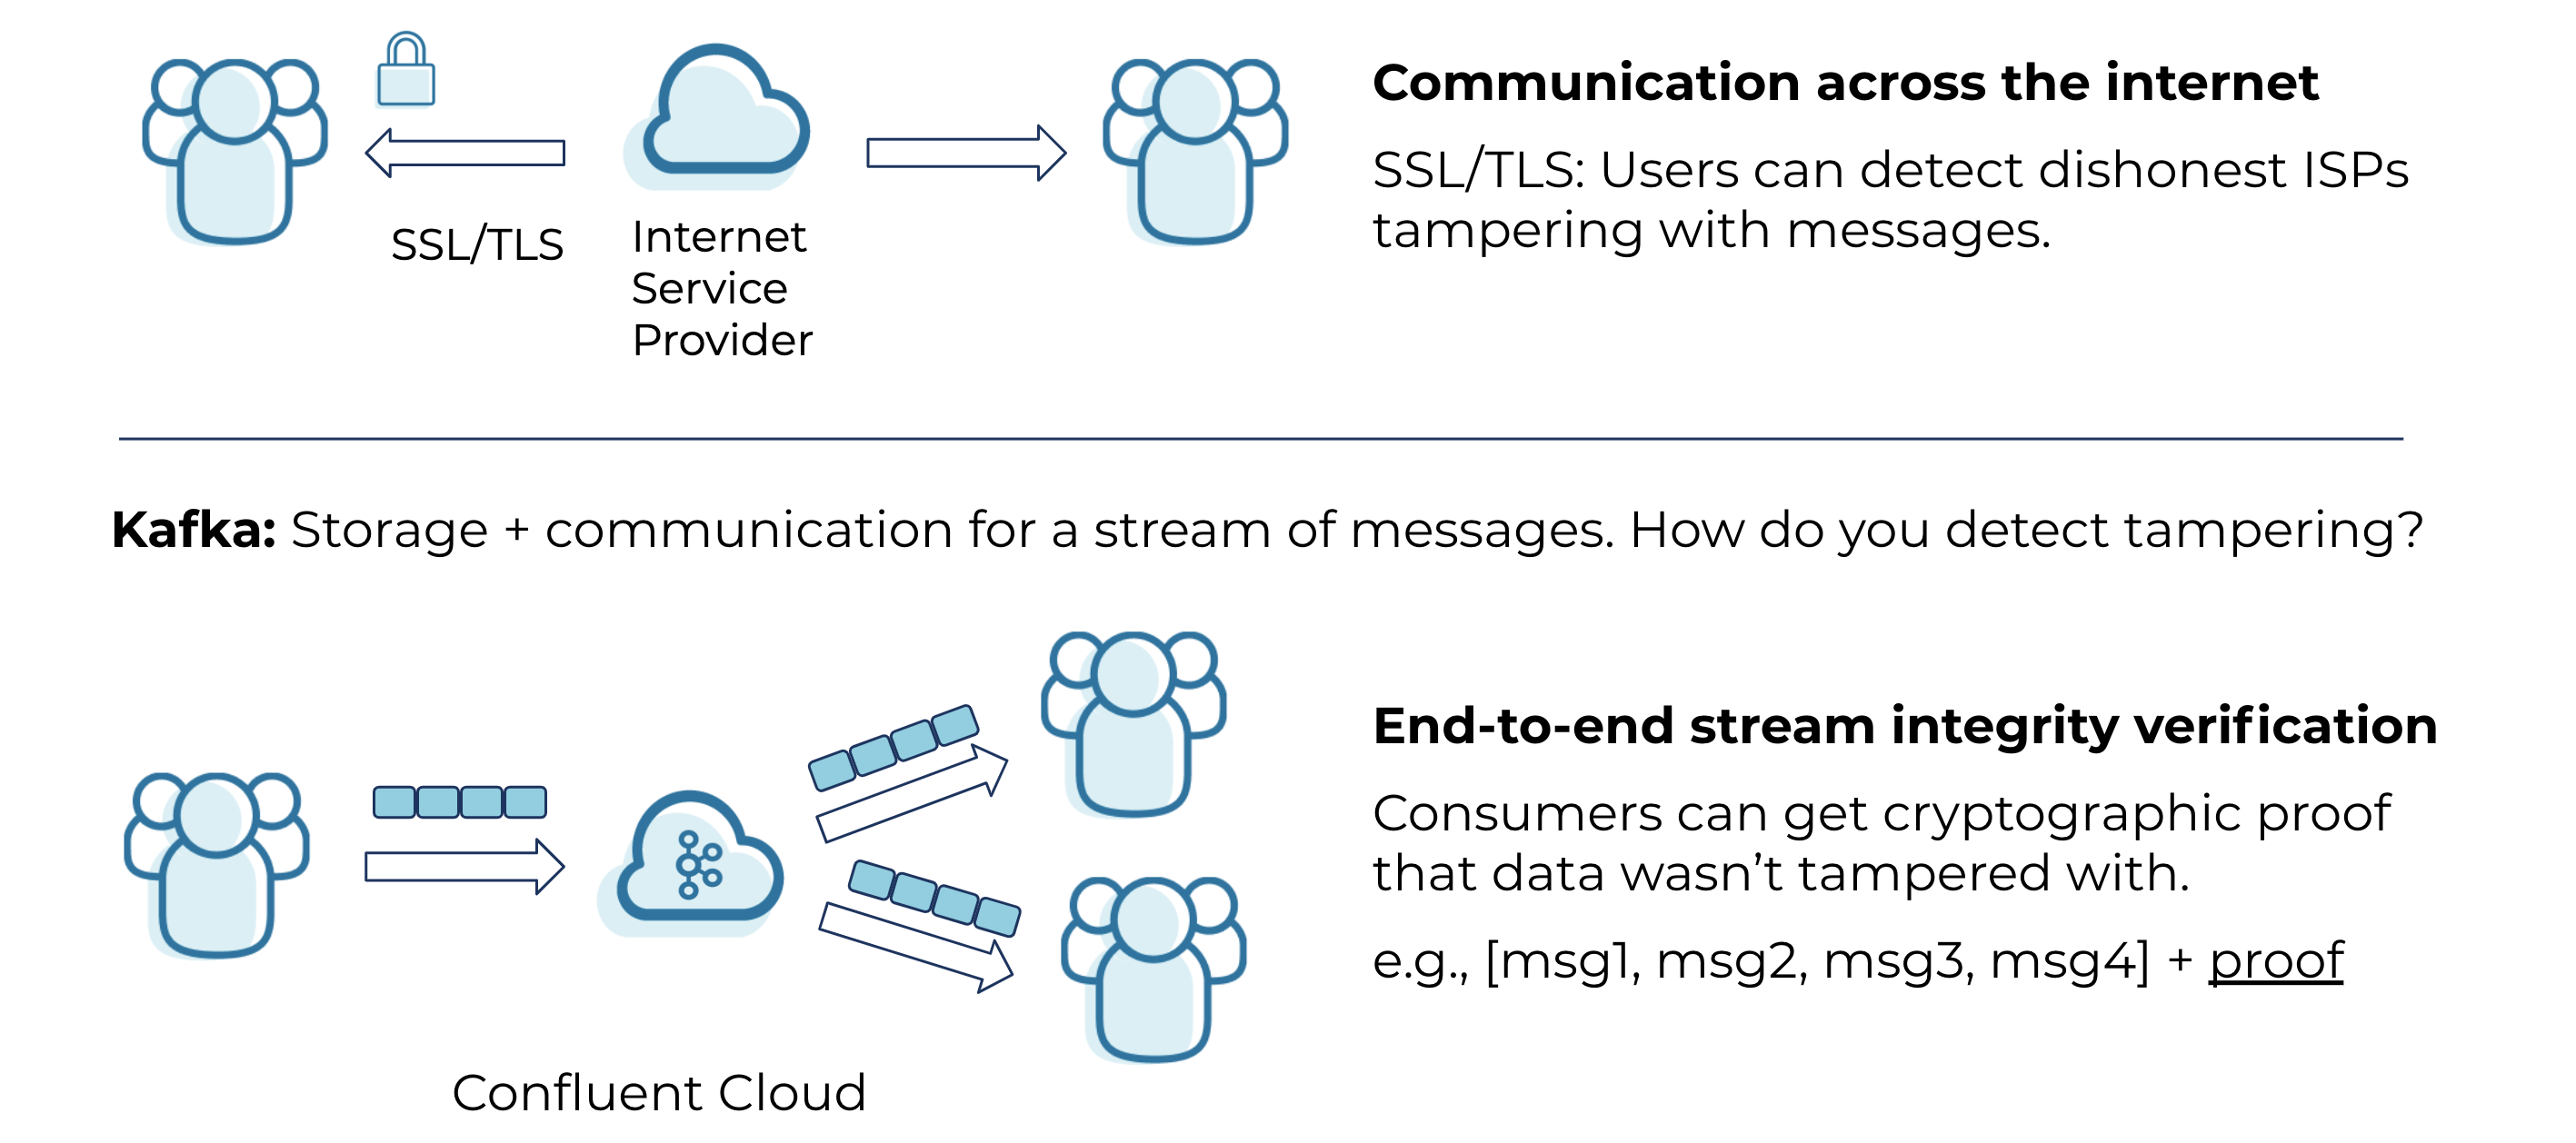 Communication across the internet | End-to-end stream integrity verification